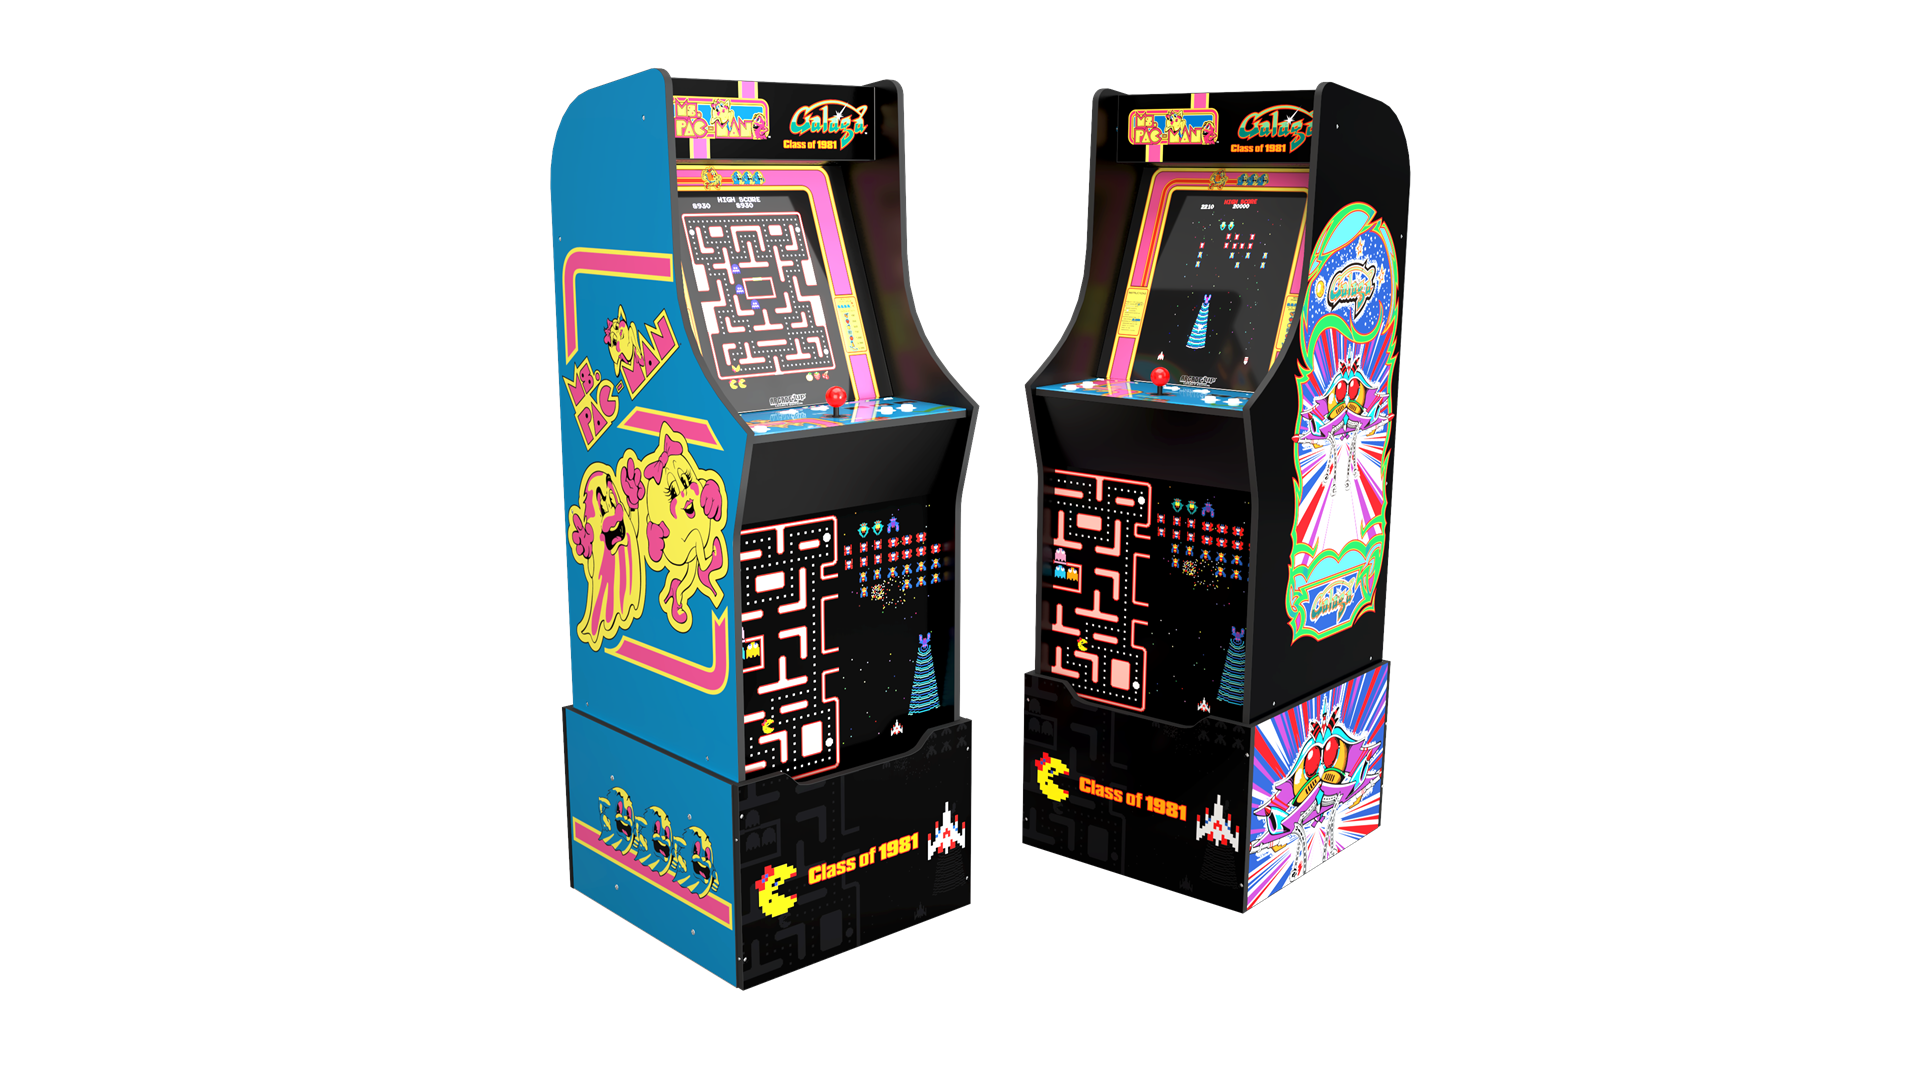 A Machine with 'Ms. Pac-Man' art on the left and 'Galaga' art on the right